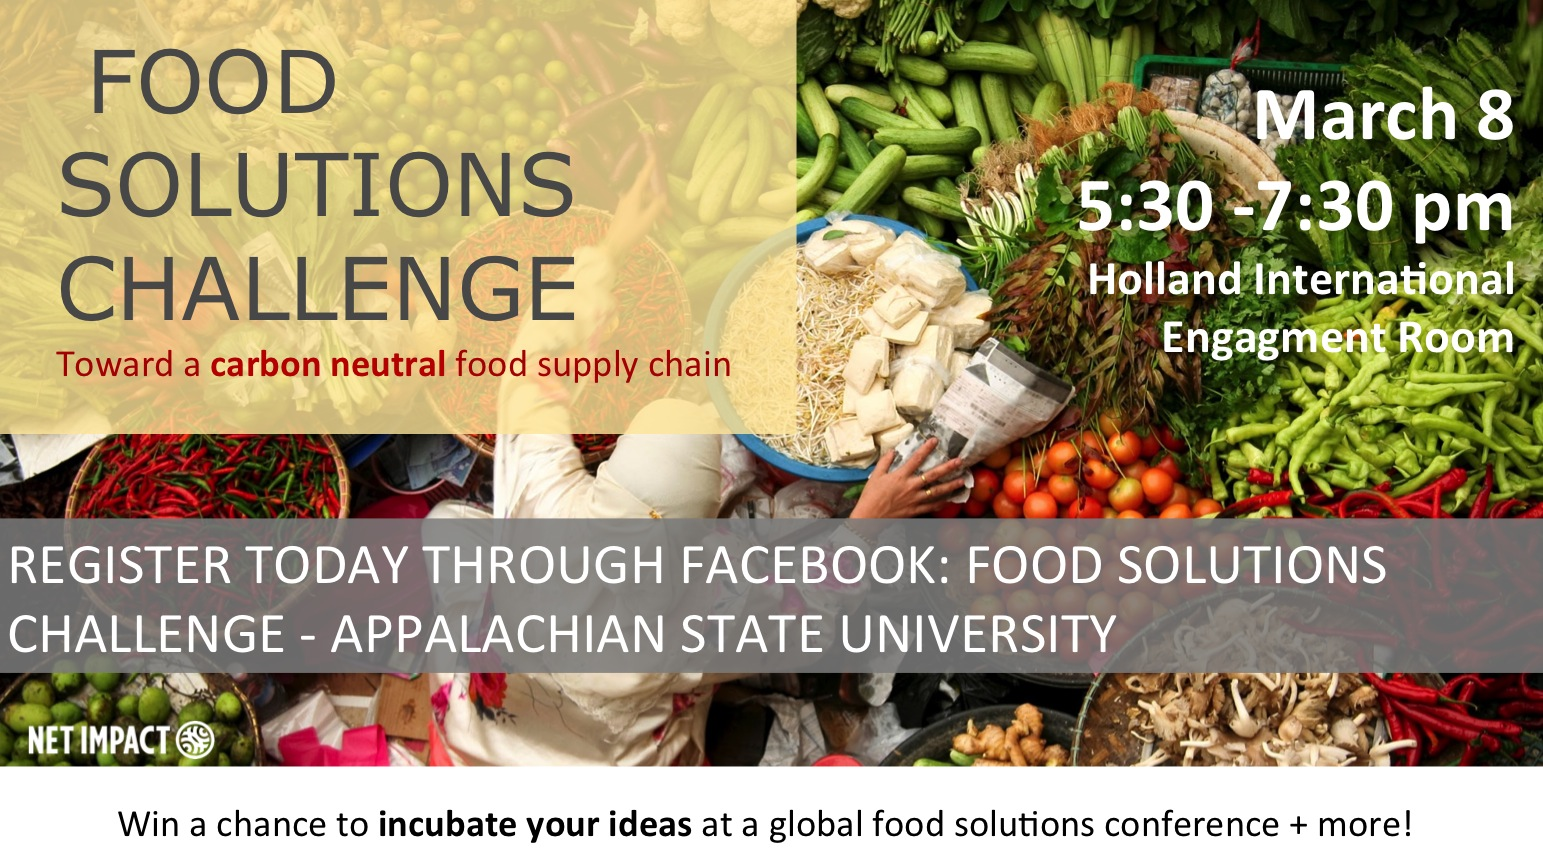 Food Solutions Challenge to be held March 8 | Walker College of Business